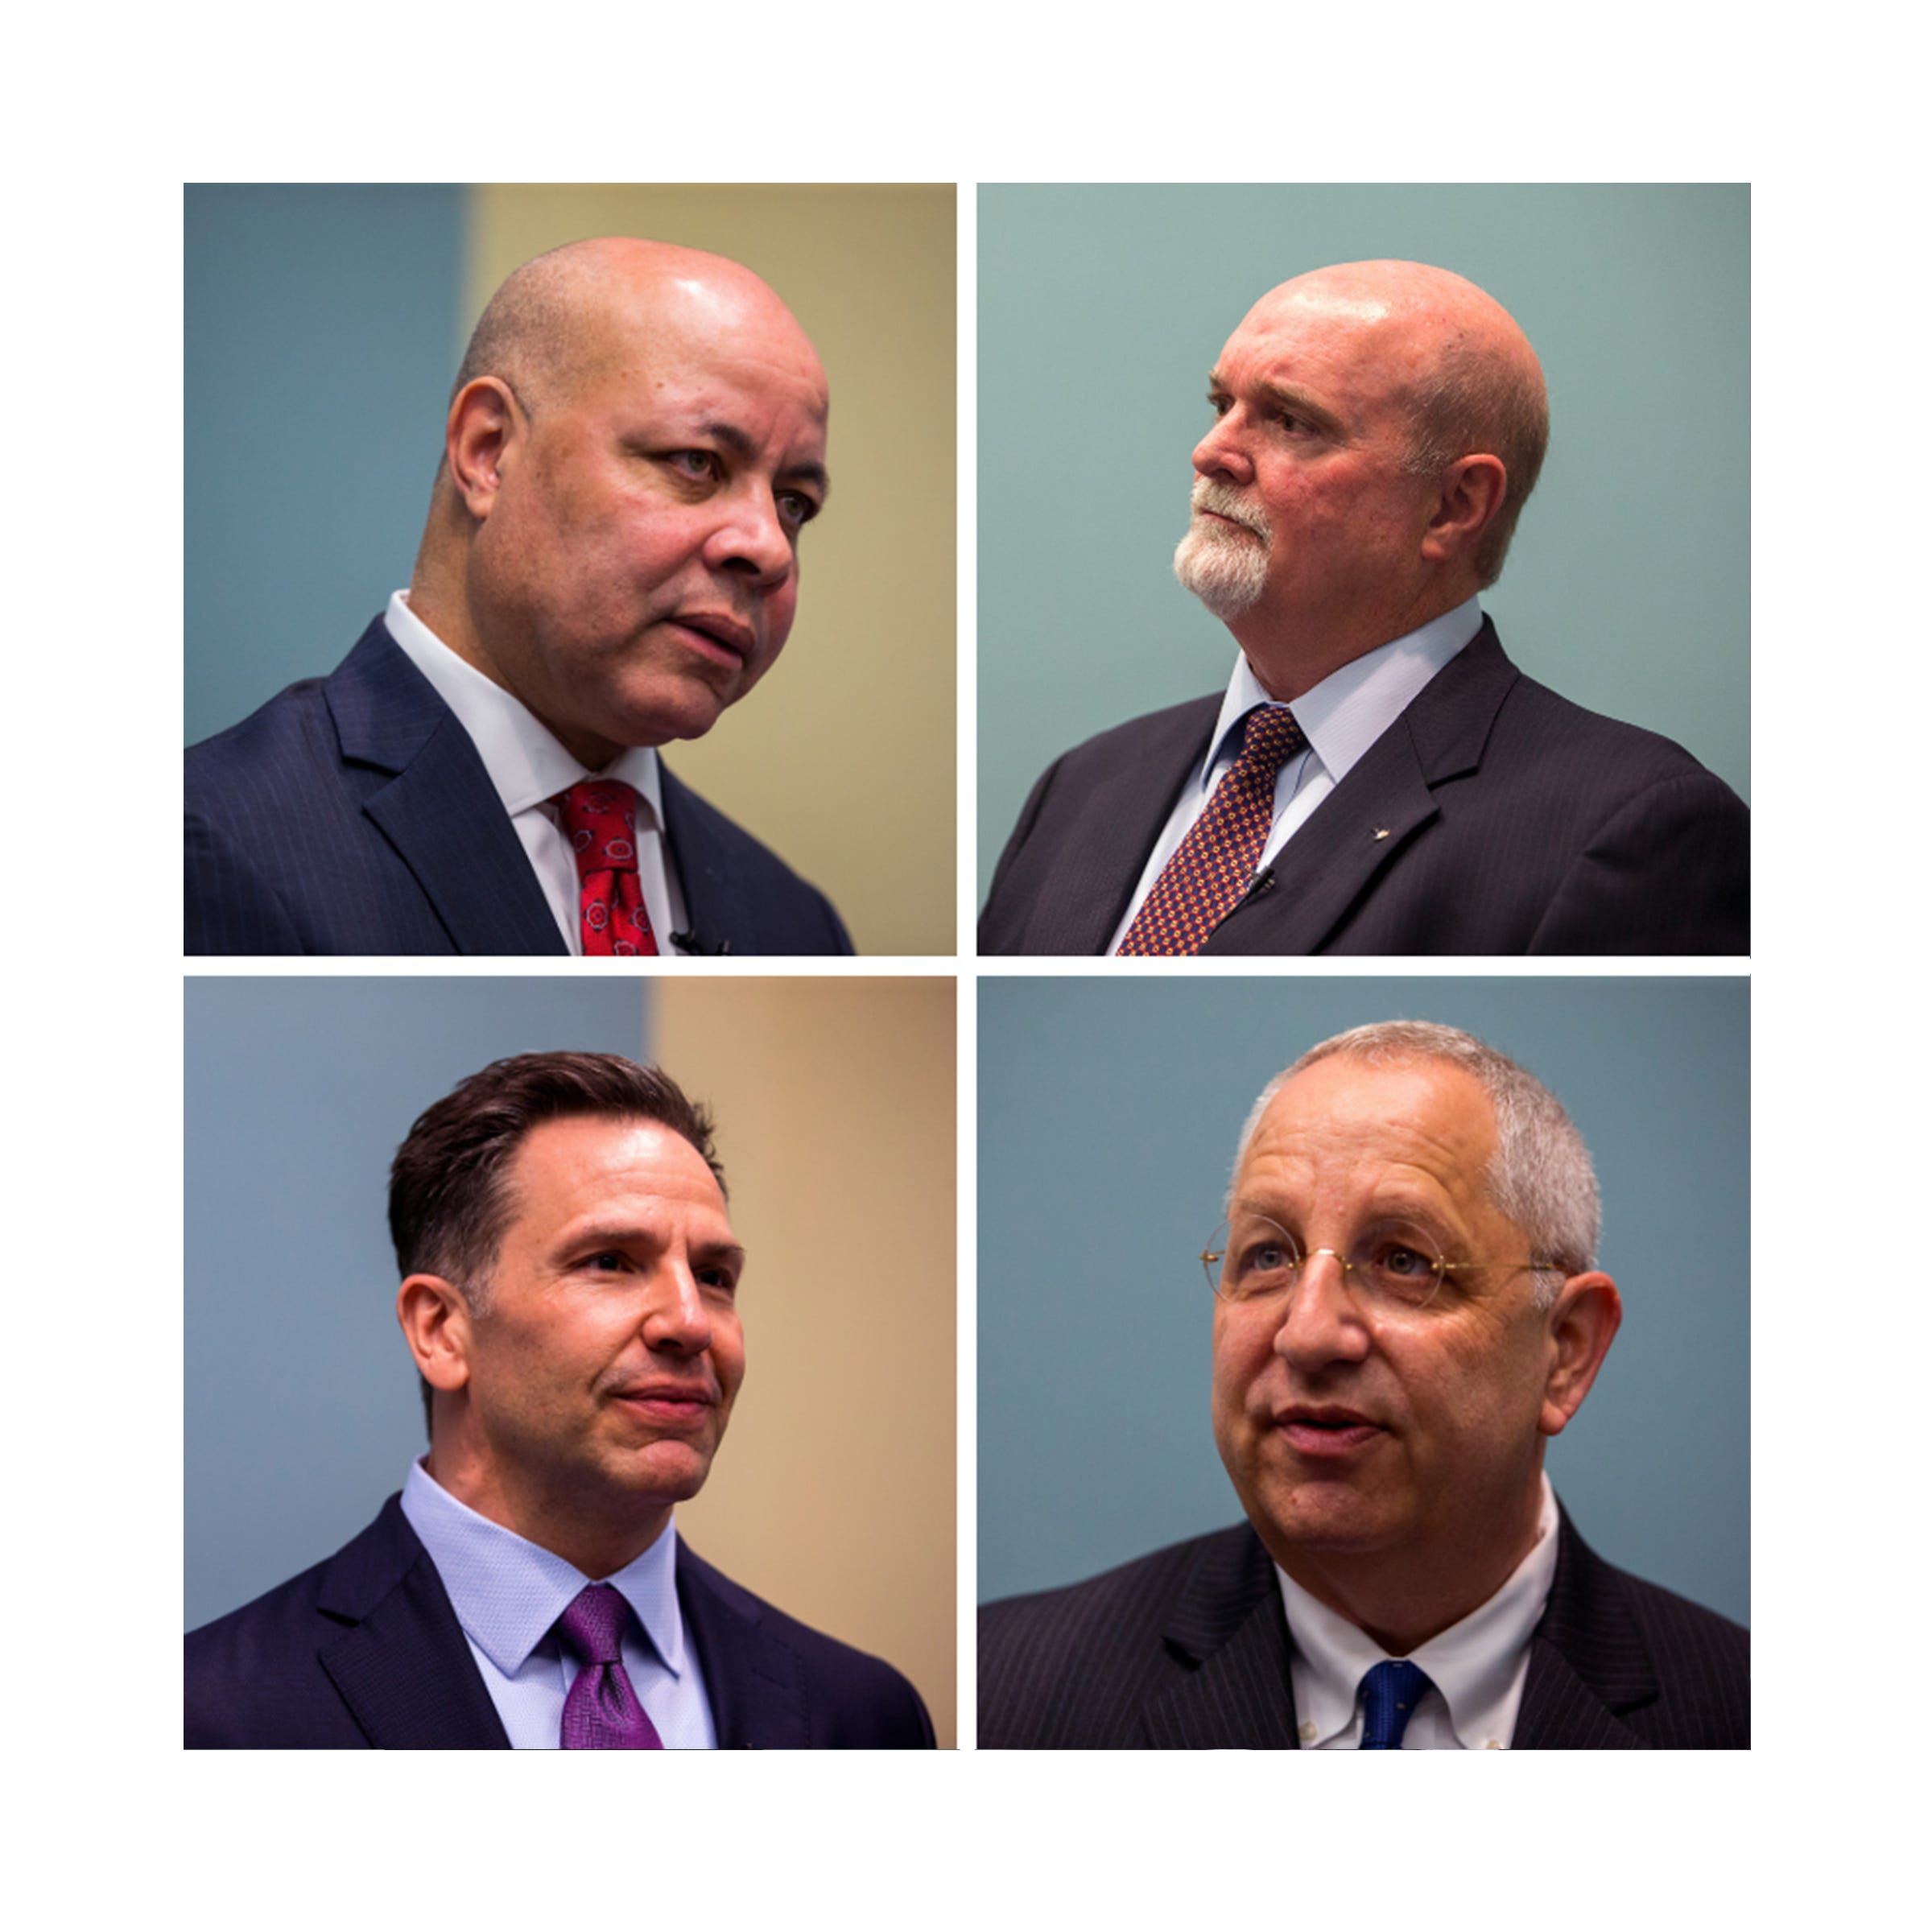 Can you influence the choice of the next Corpus Christi city manager? Maybe this way